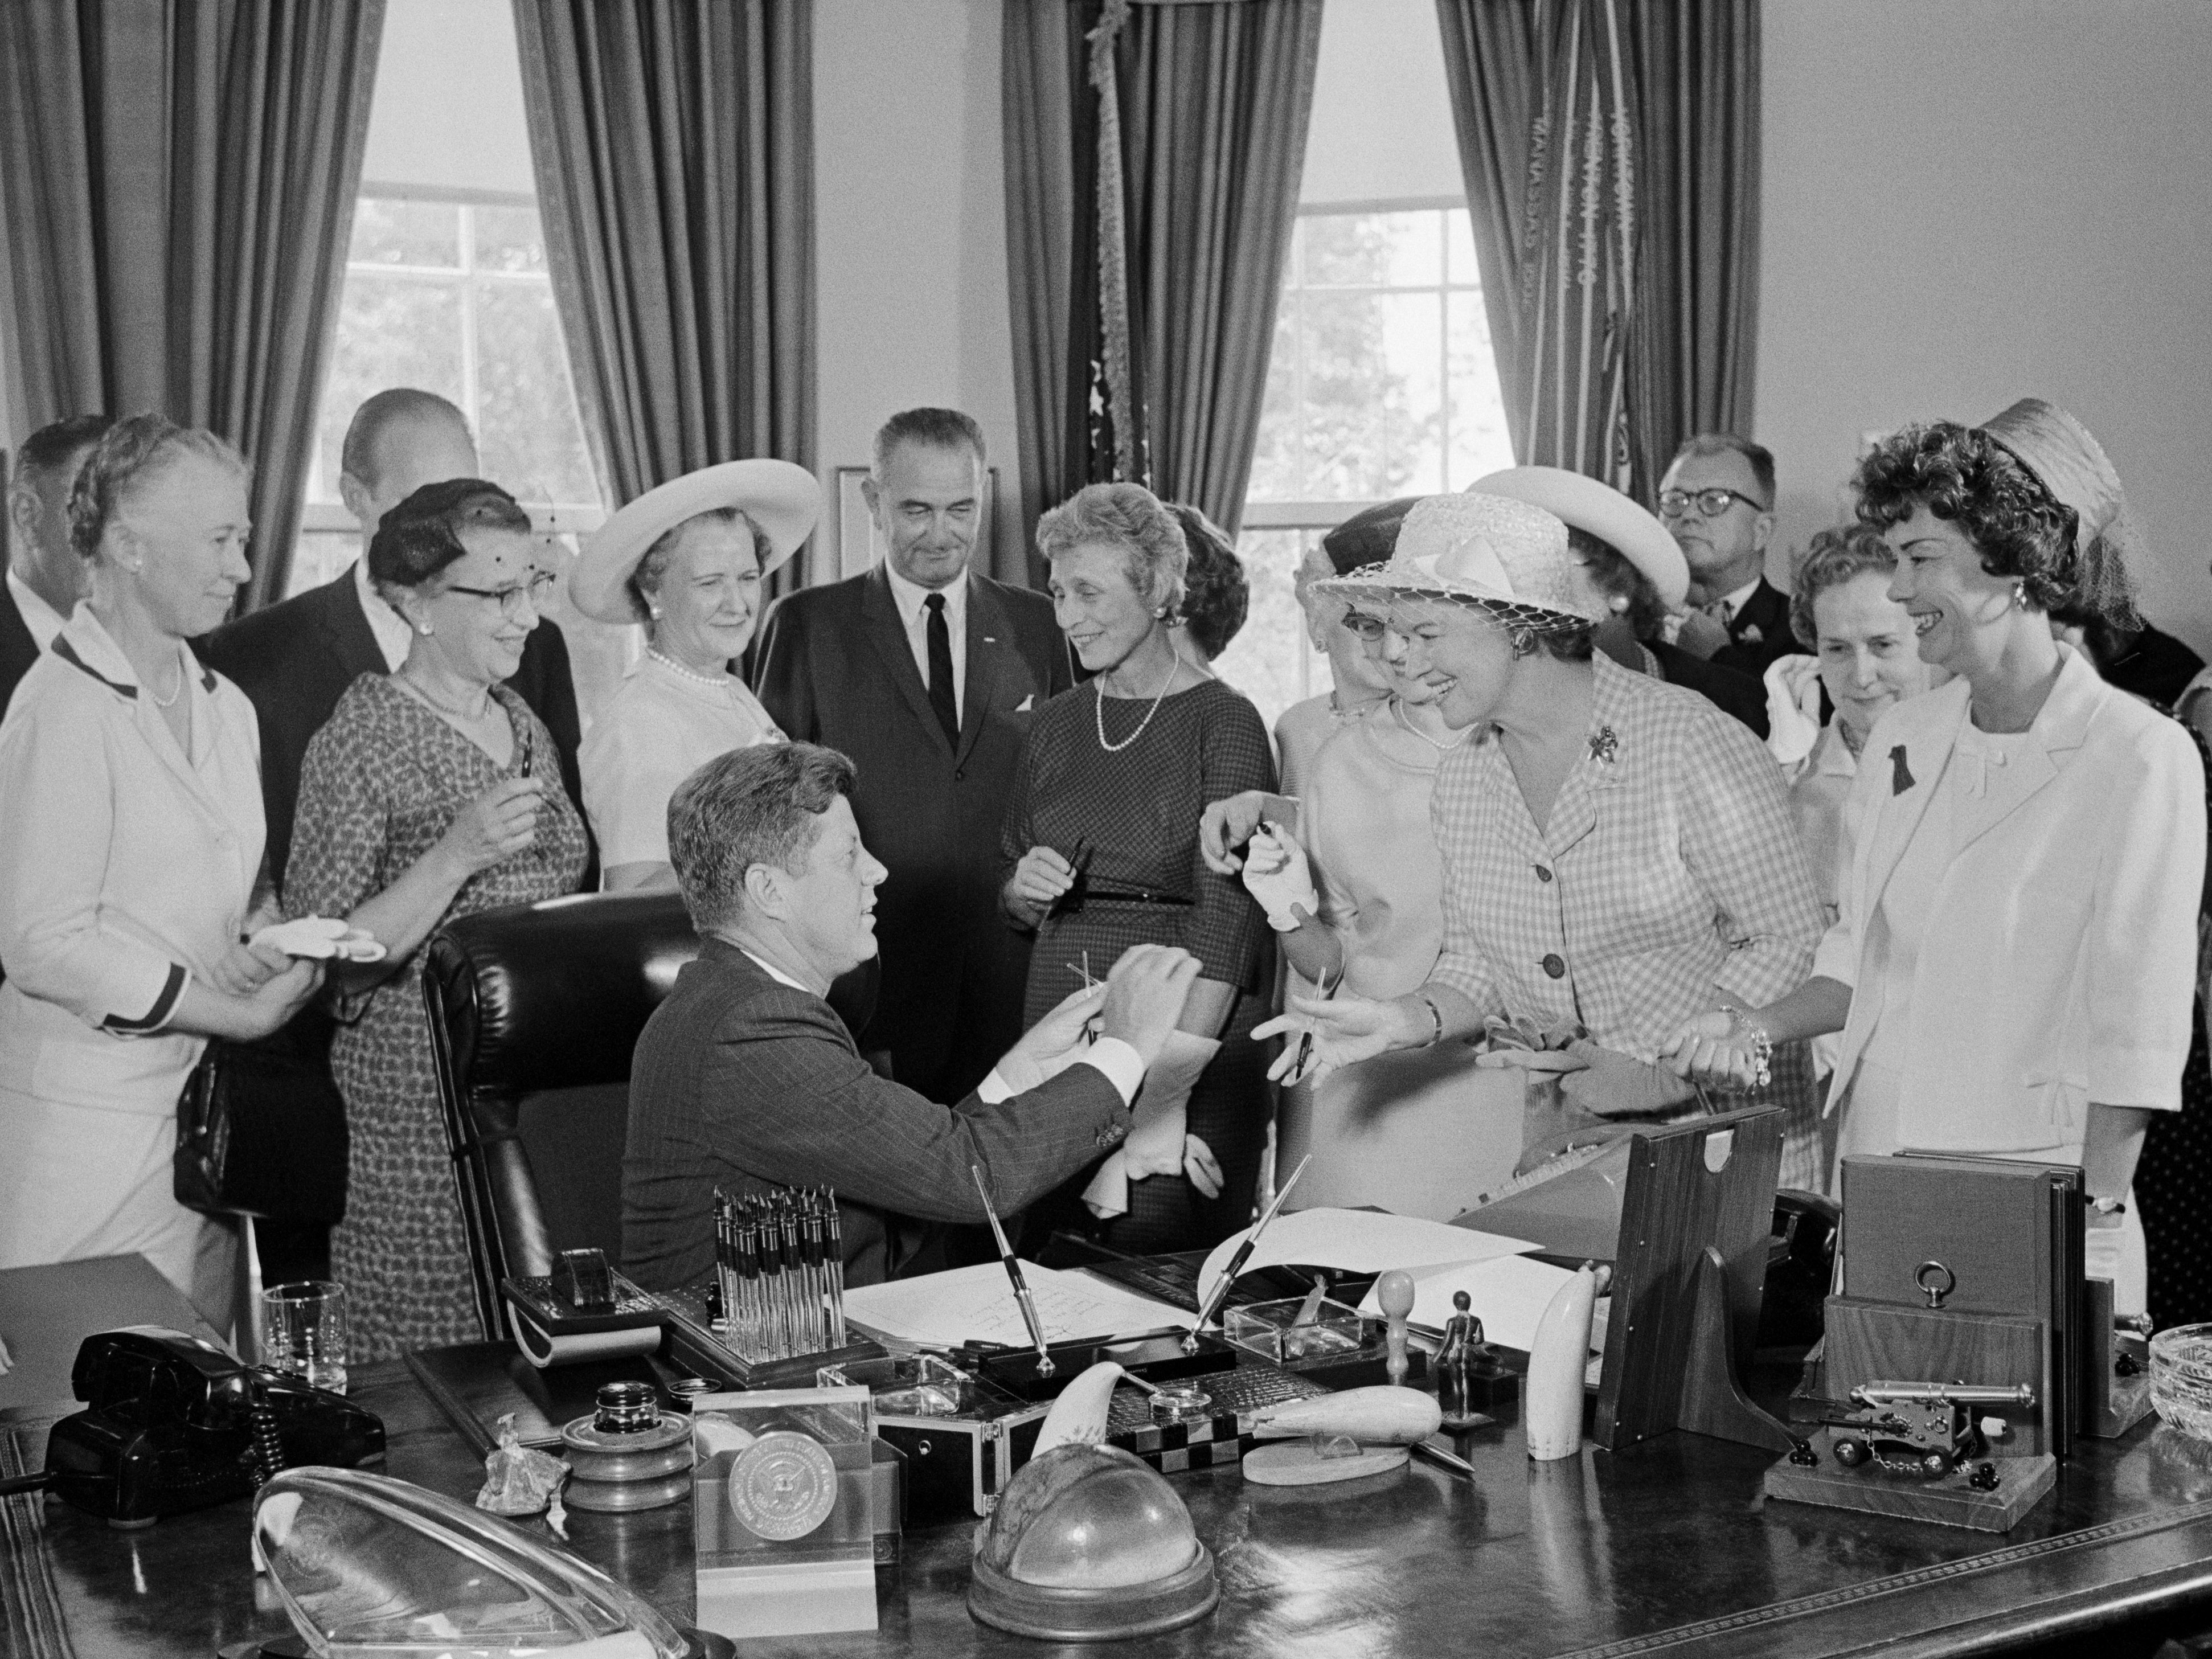 10 Jun 1963, Washington, DC, USA --- Original caption: President Kennedy hands out pens during a ceremony at the White House today in which he signed into law a bill aimed at assuring women of paychecks equal to those of men doing the same work. Left to right: Esther Peterson, Assistant Secretary of Labor; Evelyn Christensen, National Board of YWCA; Rep. Leonor Sullivan (D-Missouri); Vice President Lyndon Johnson; Mrs. Joseph Willen, National Council of Jewish Women; Dr. Minnie Miles, National Federation of Business and Professional Women's Clubs (partially hidden); Miss Margaret Mealey, National Council of Catholic Women; Andrew Biemiller, AFL-CIO Official; Rep. Edith Green (D-Oregon); and Mrs. Garlyn Davis. --- Image by © Bettmann/CORBIS